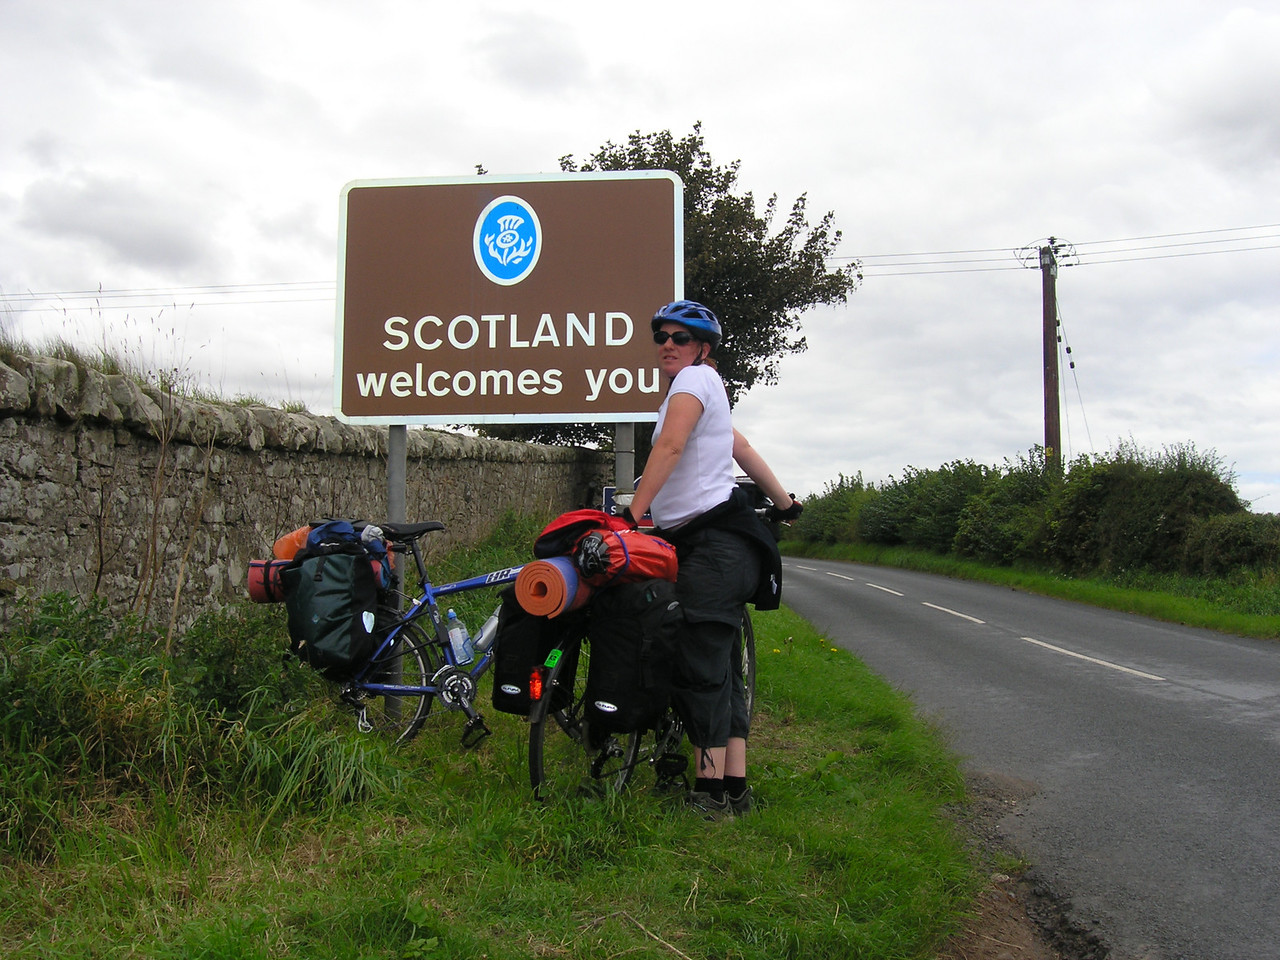 Crossing the Scottish Border